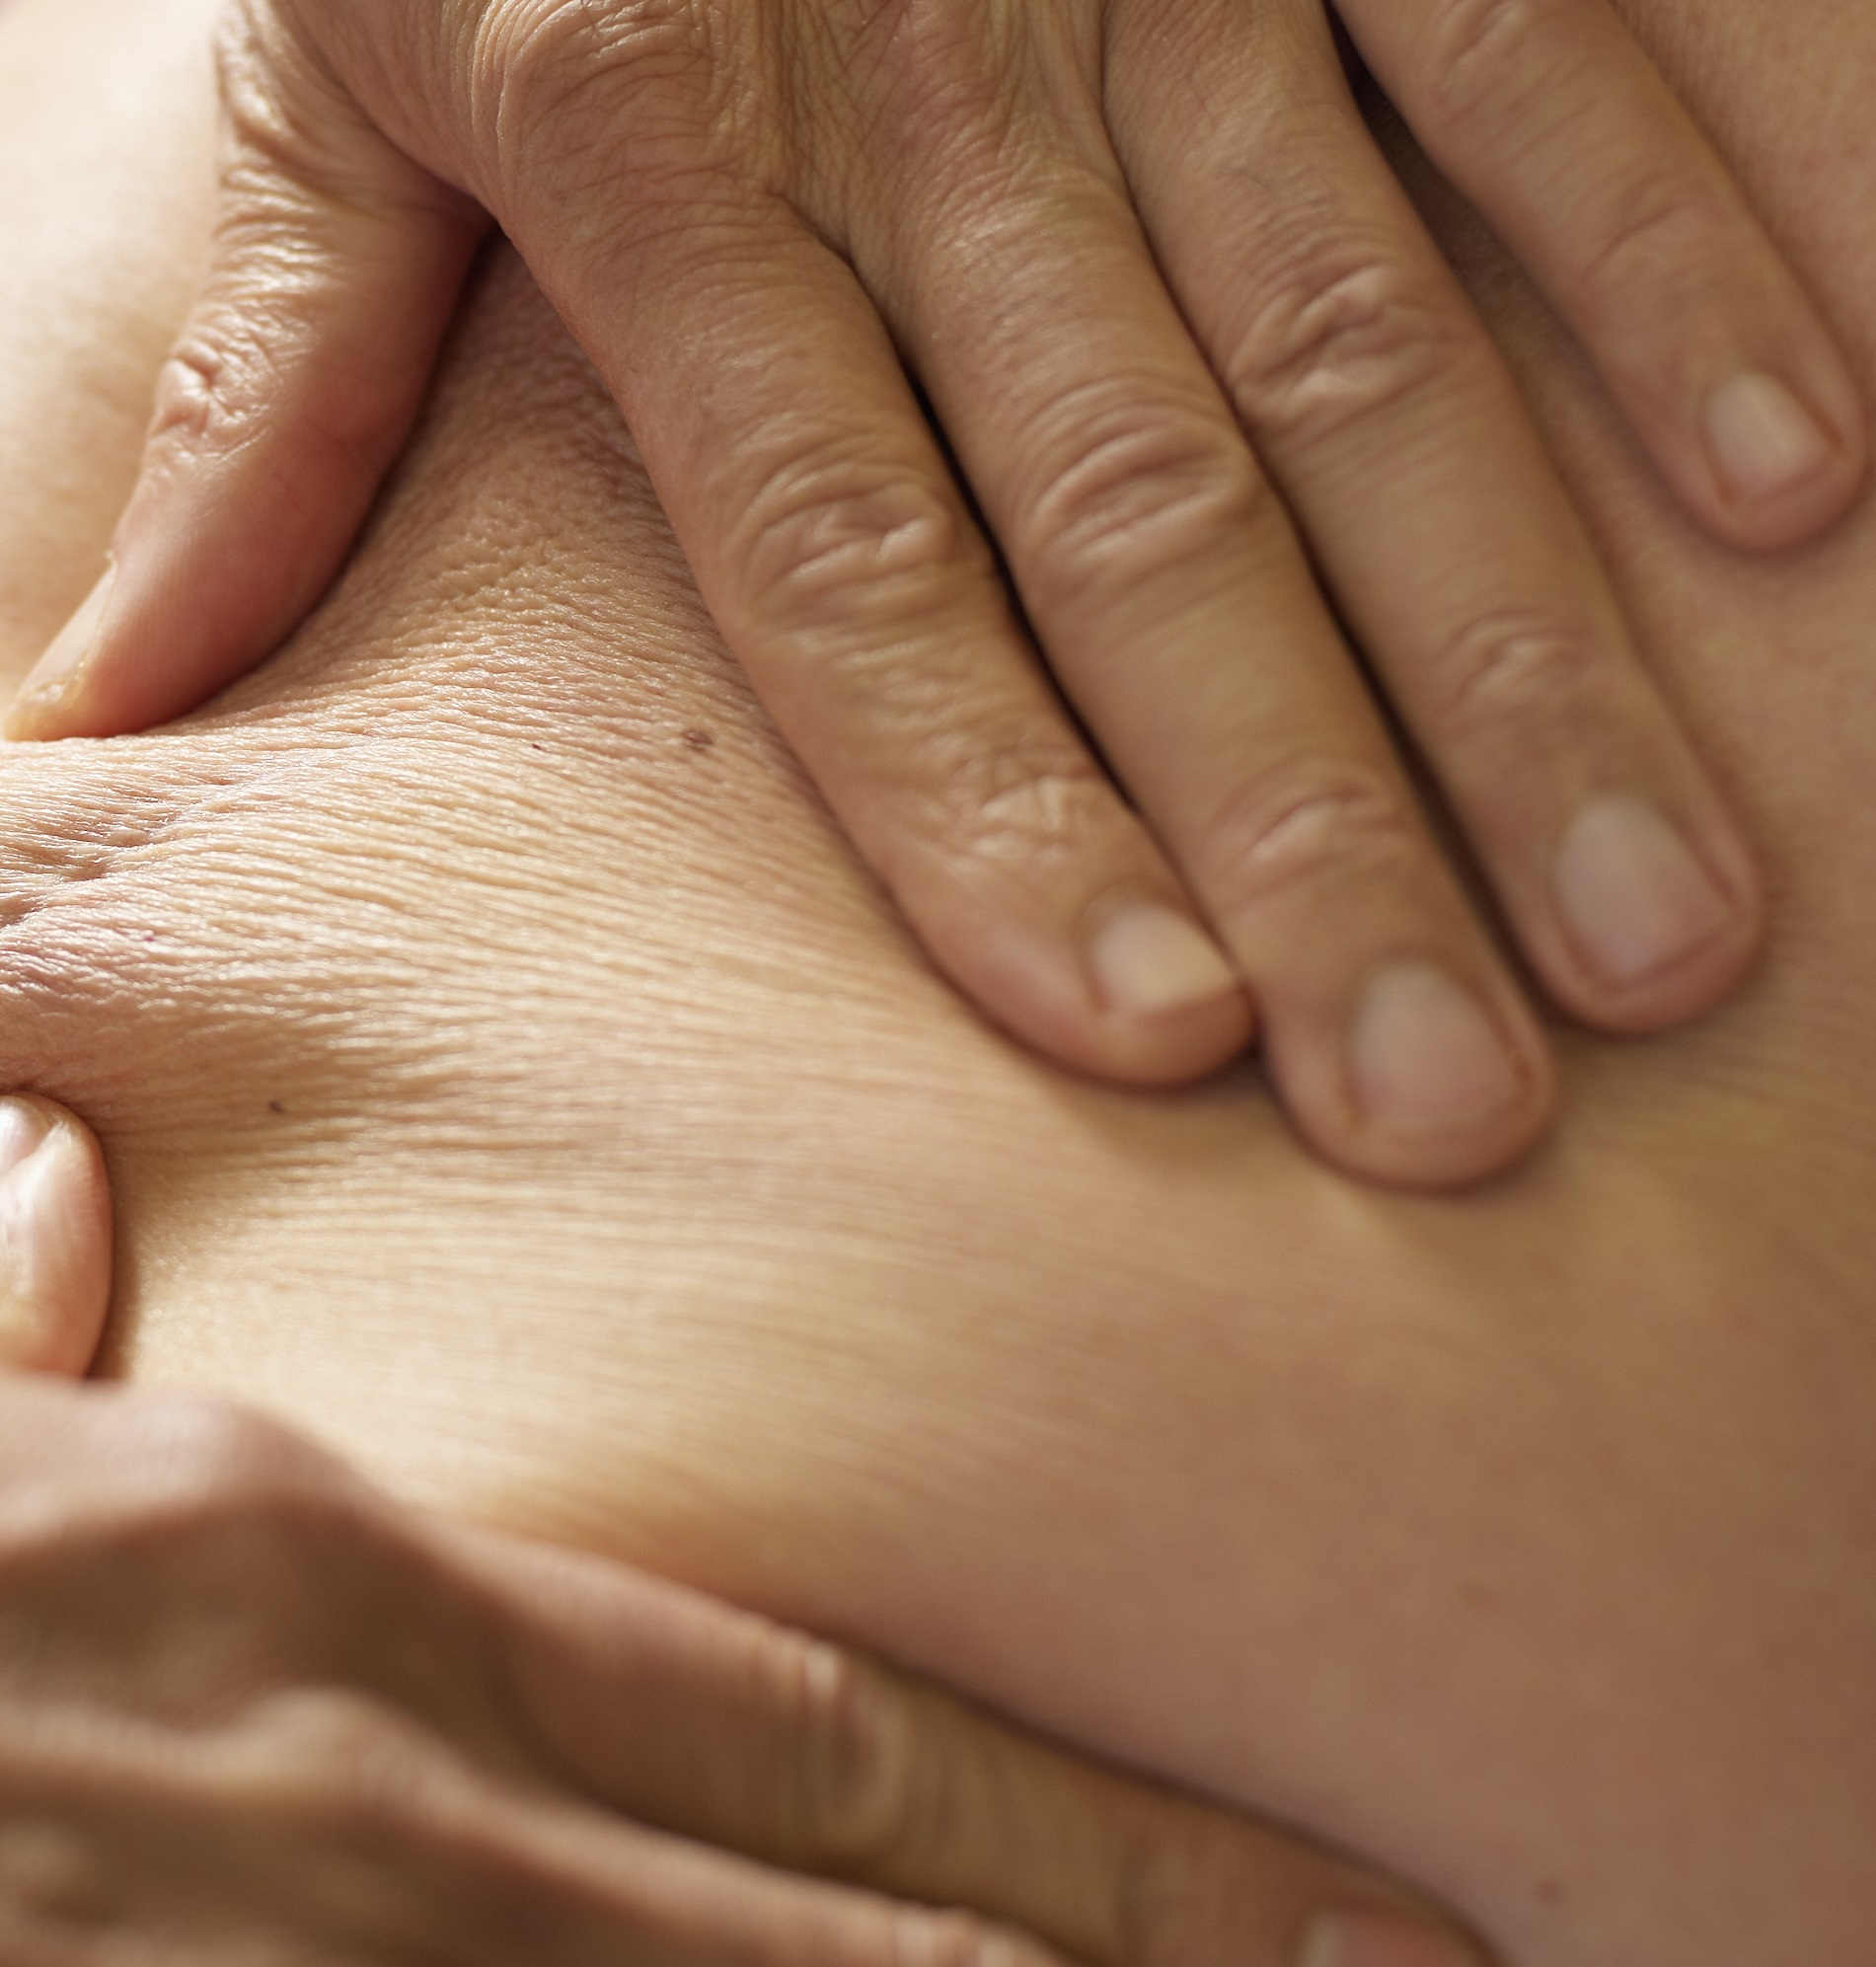 massage, ontspanningsmassage, sportmassage